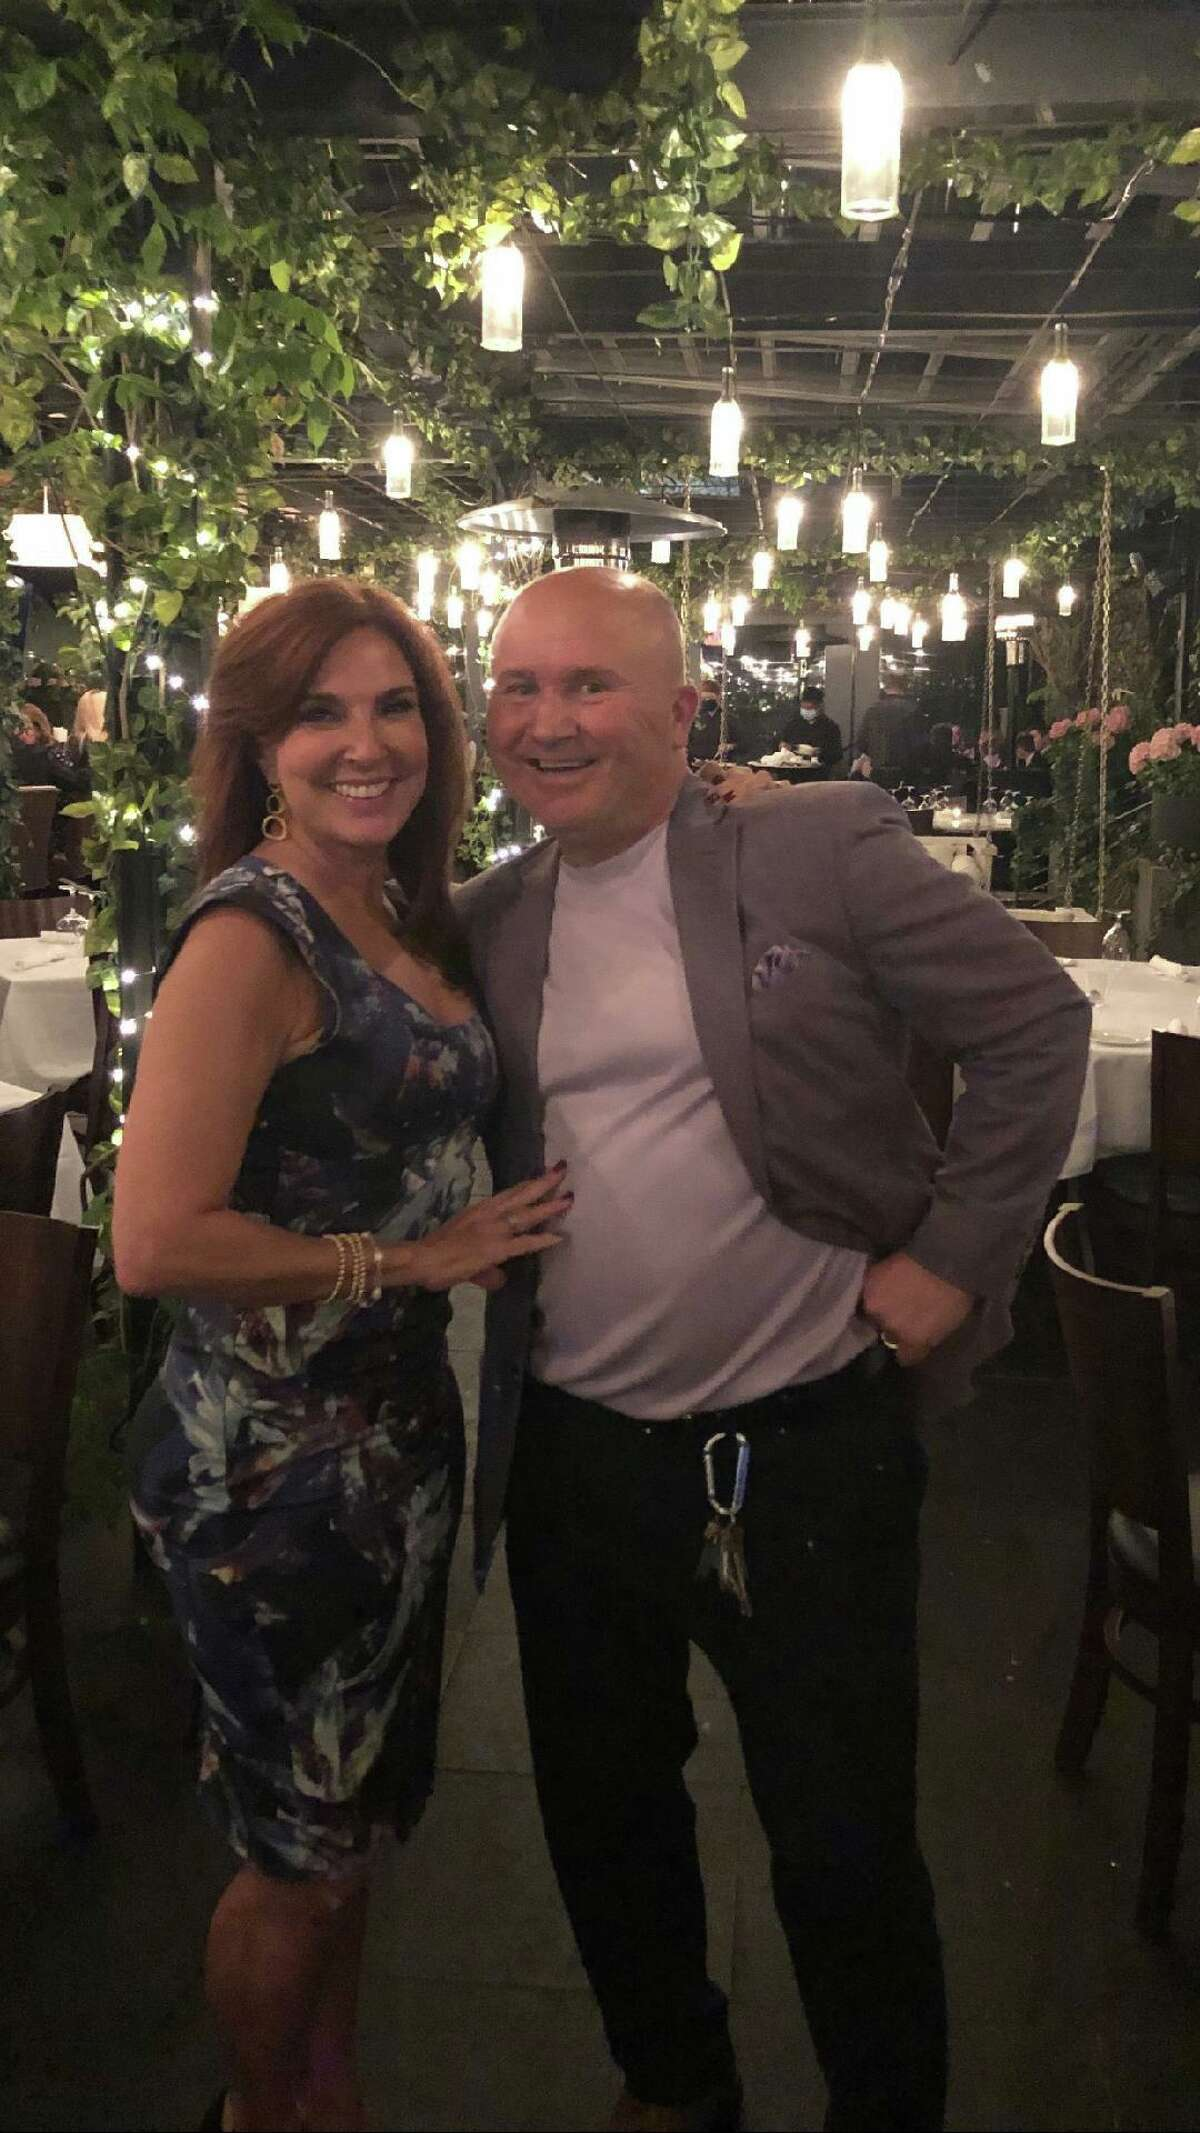 TV Judge Marilyn Milian of 'The People's Court' with Tony Capasso at Tony's at the JHouse in Riverside recently. Daytime Emmy Award-winning judge Marilyn Milian was seen having dinner at Tony's at the JHouse in Riverside. Milian presides over the American courtroom television series